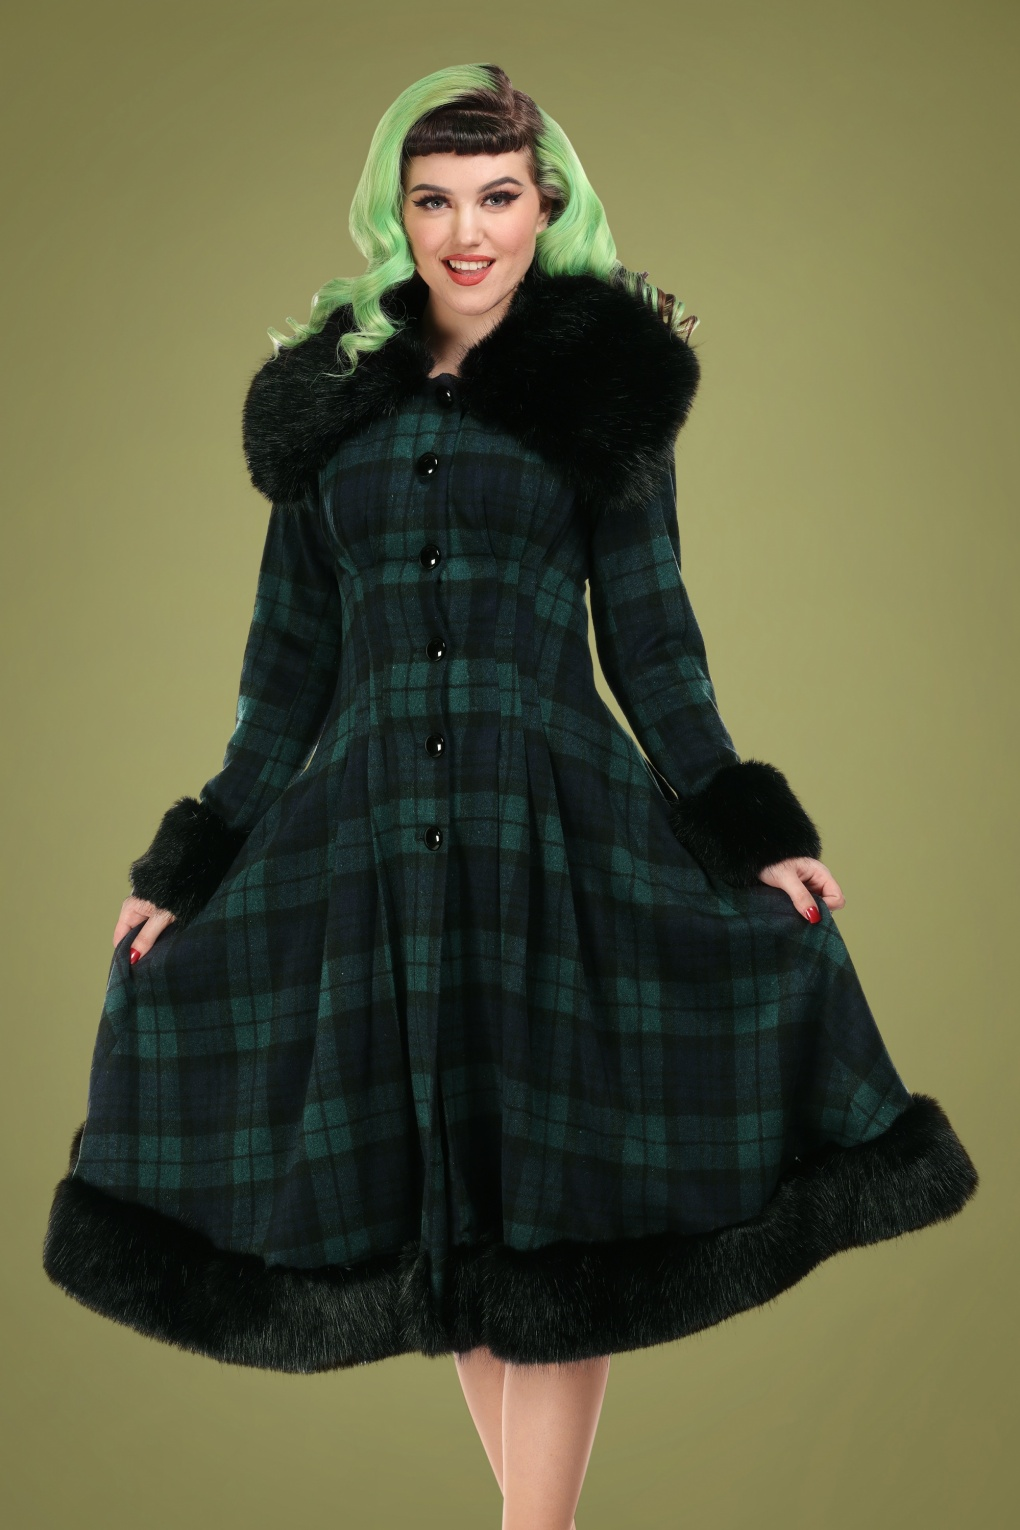 Vintage Coats & Jackets | Retro Coats and Jackets 30s Pearl Coat in Blackwatch Check £188.52 AT vintagedancer.com